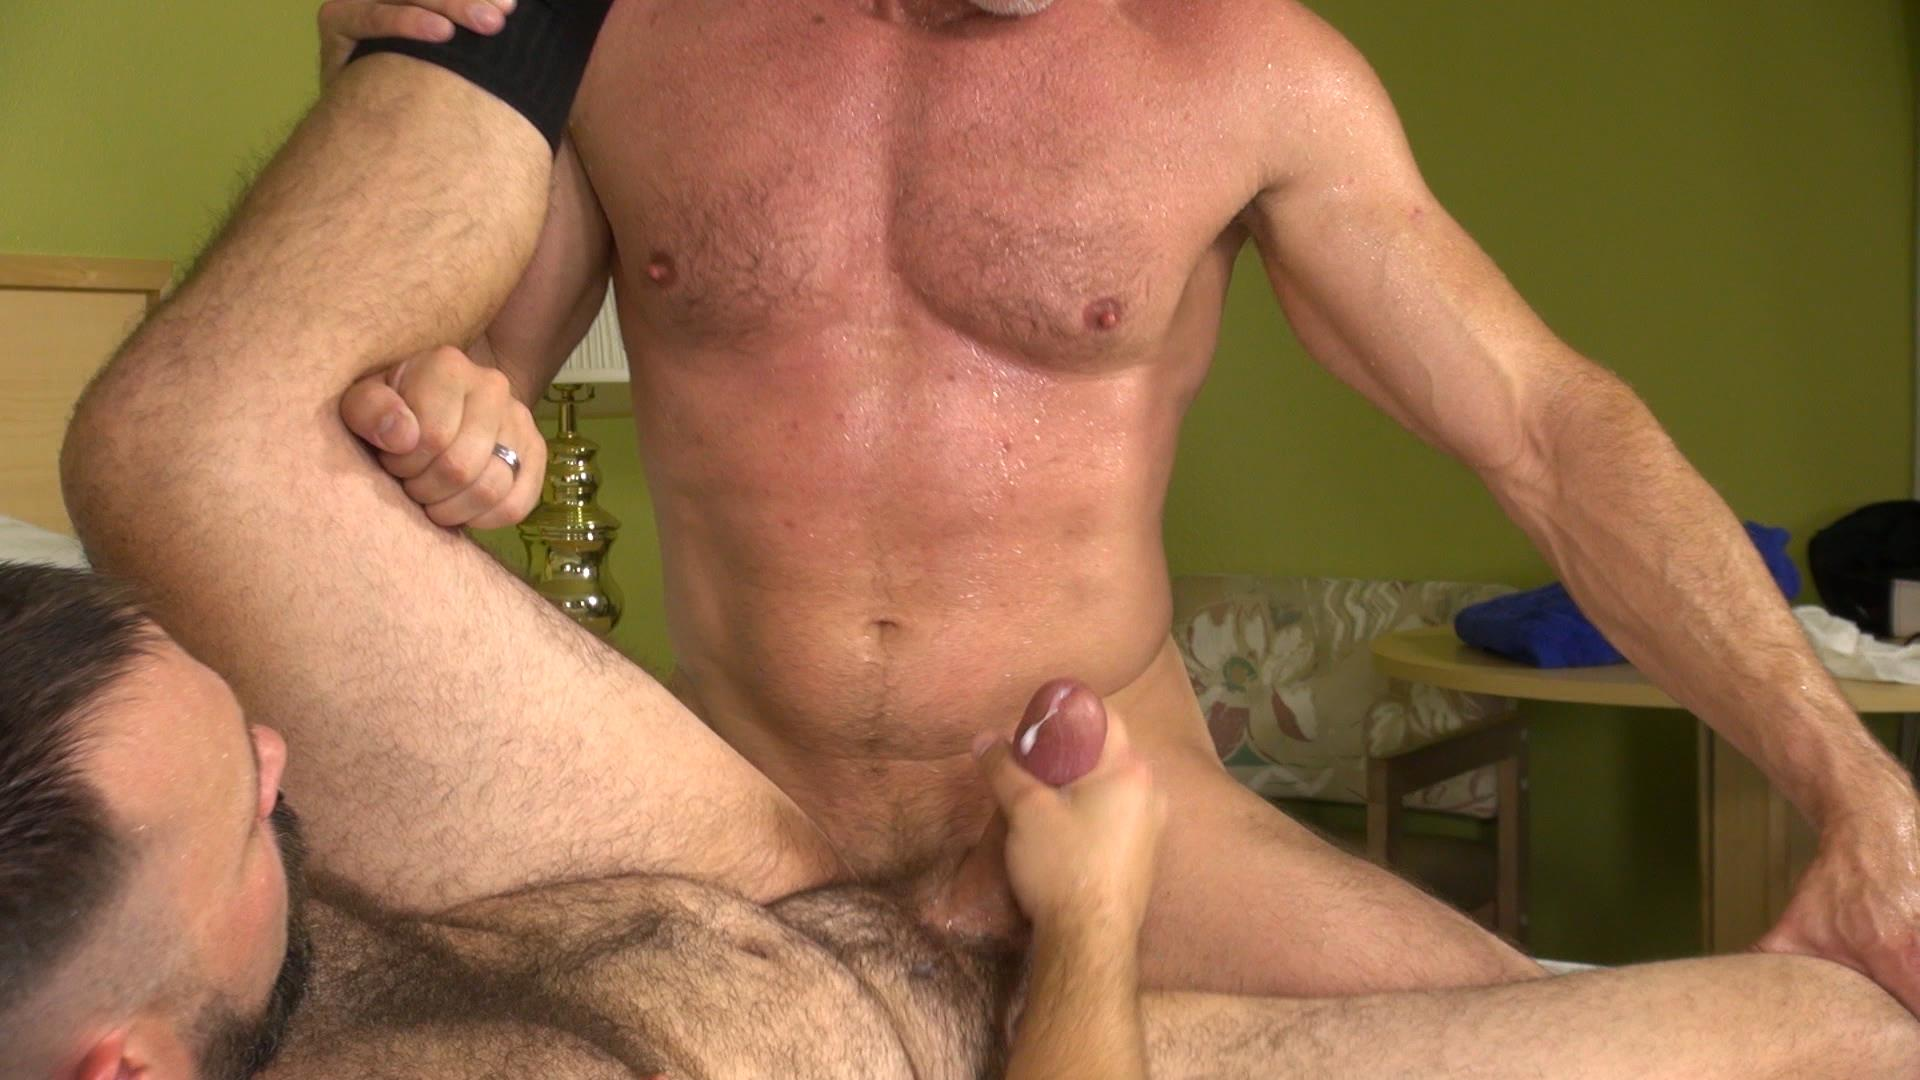 Raw-and-Rough-Boy-Fillmore-and-Sam-Dixon-Hairy-Muscle-Bears-Fucking-Bareback-Amateur-Gay-Porn-08 Hairy Muscle Bears Barebacking At A Cheap Motel